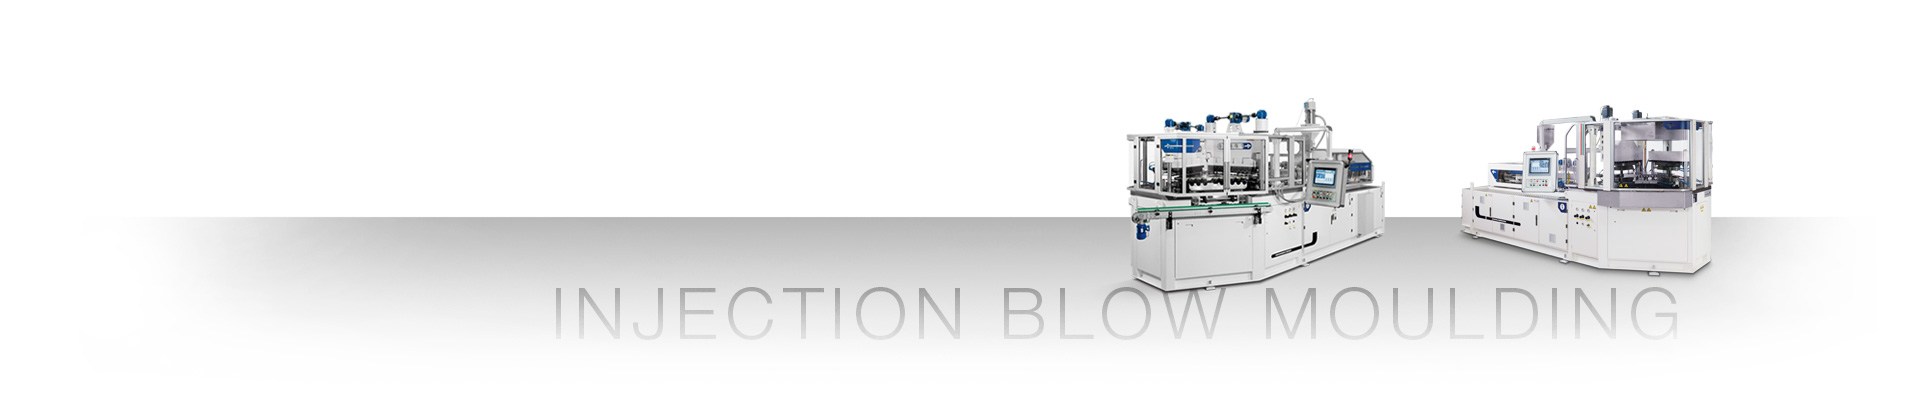 Injection Blow Moulding and Injection Blow Molding - IBM